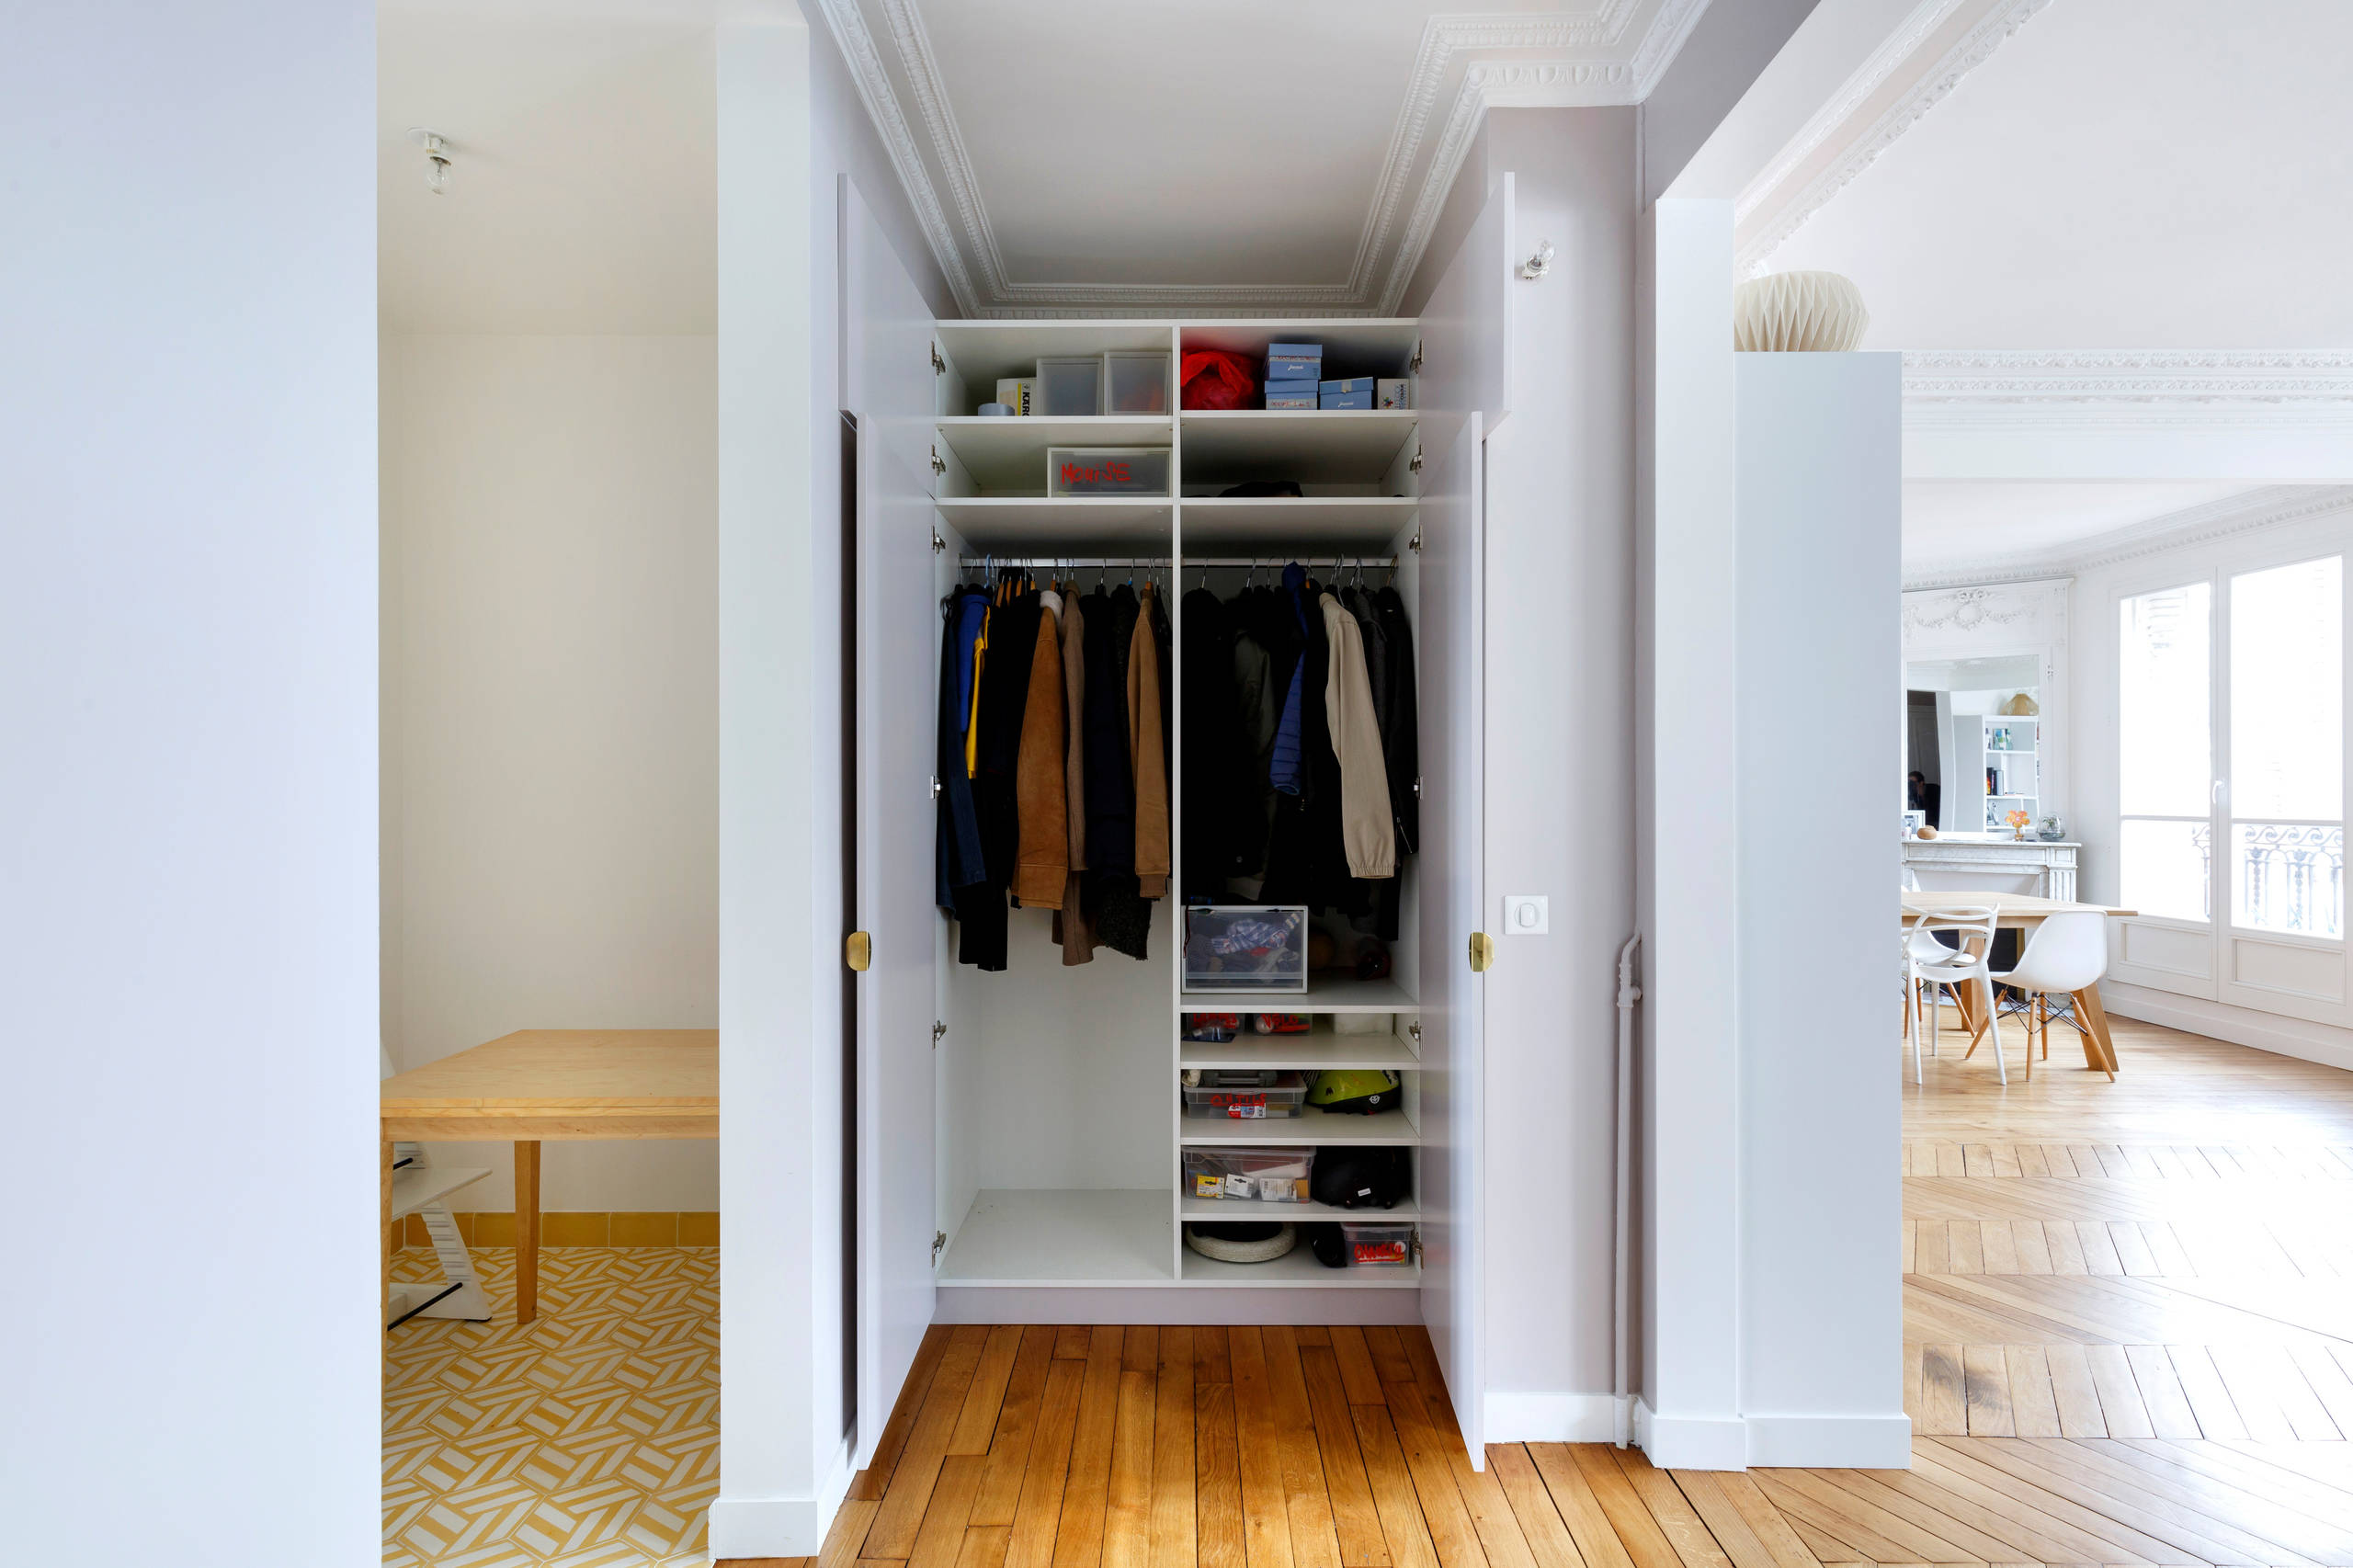 Using the small niche next to the bedroom as a closet